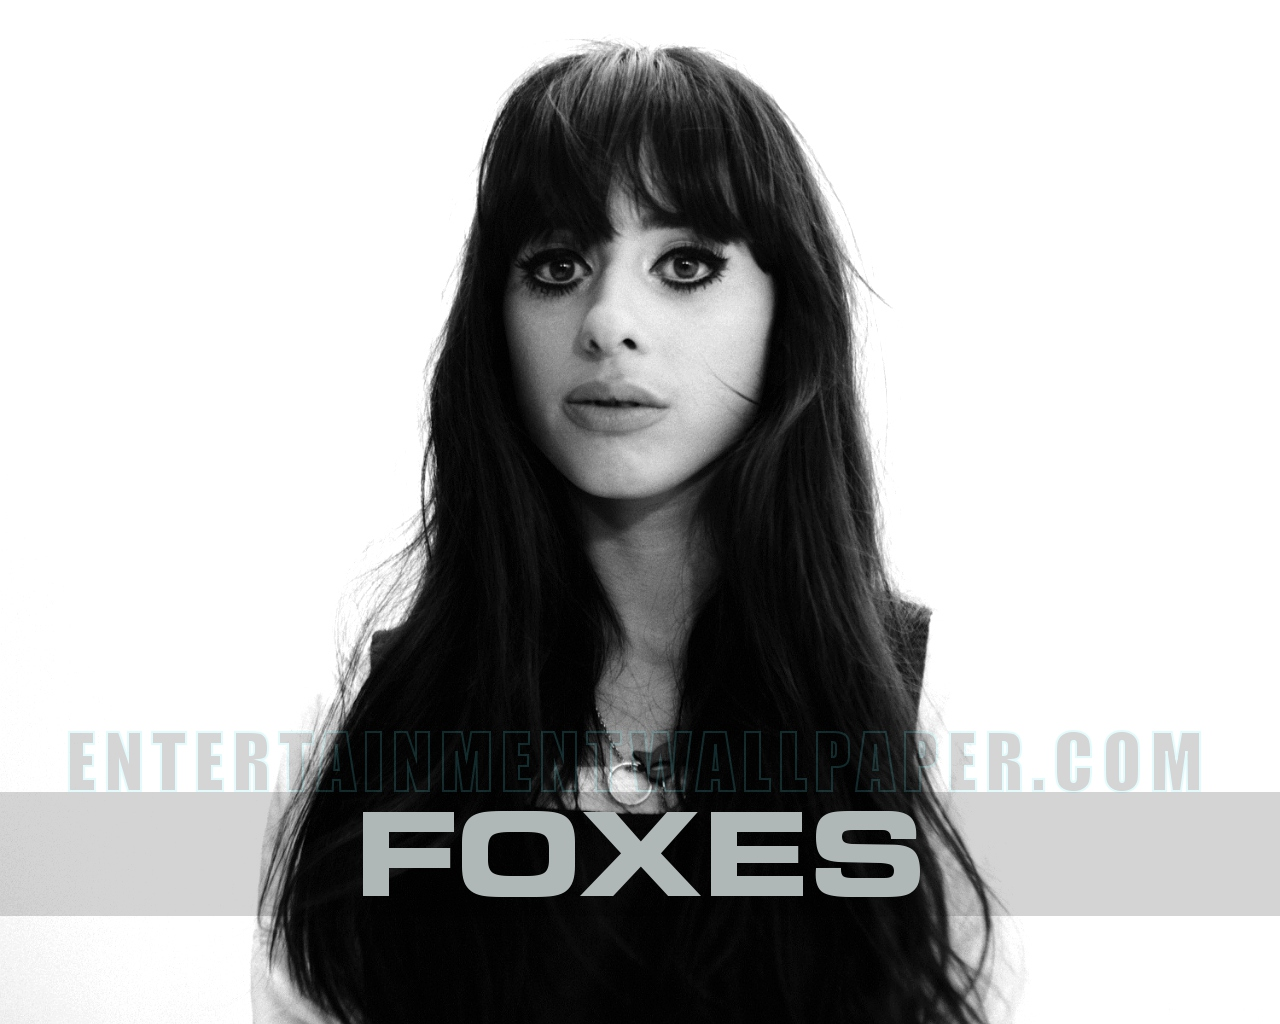 Foxes (singer)